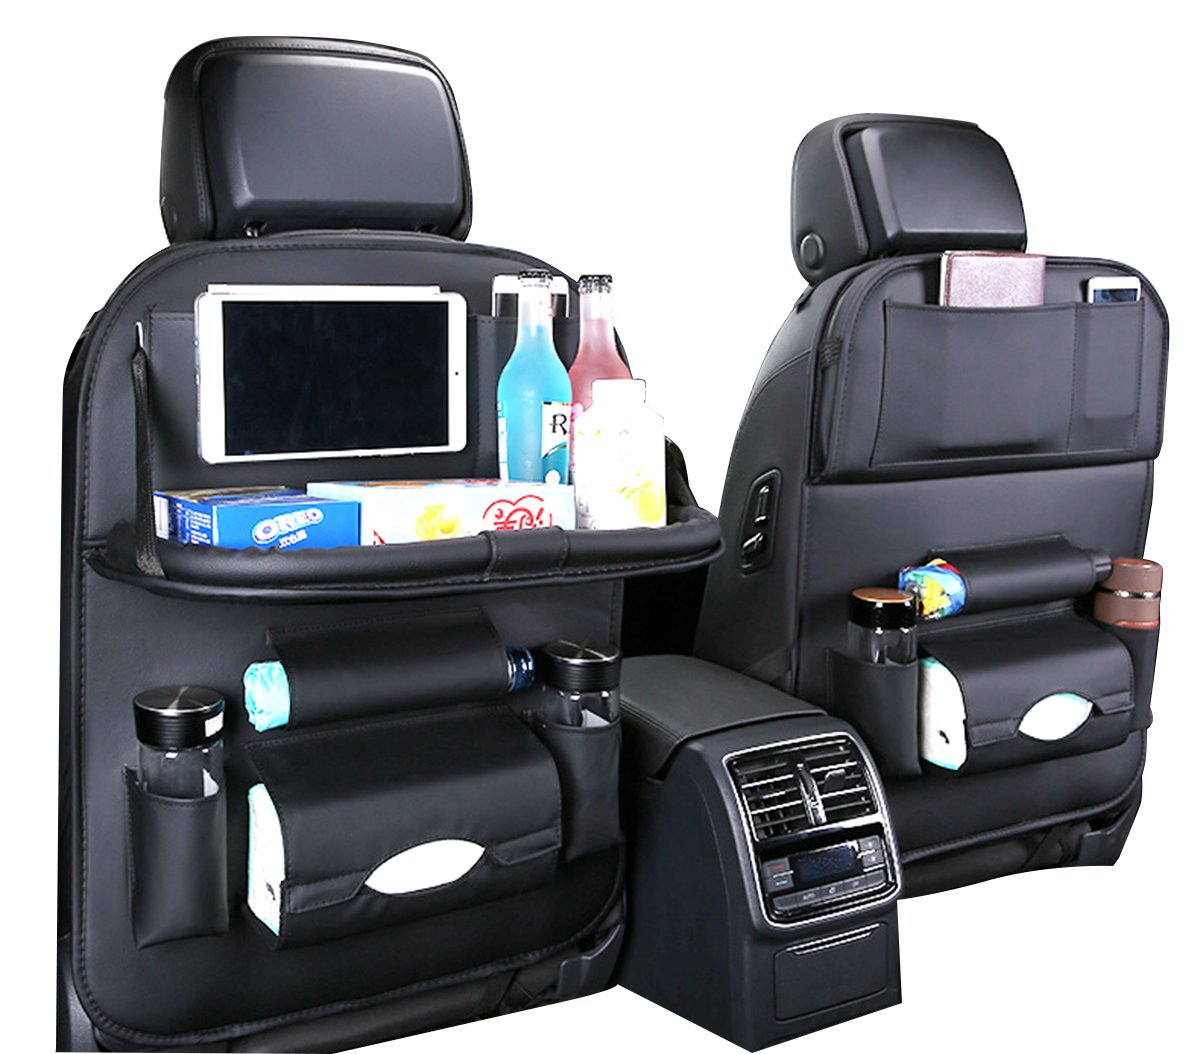 Car Back Seat Organizer with Table Tray and iPad Holder, PU Leather Automobile Seat Organizer with Foldable Dining Table, Tissue Box and Water Bottle Holder - Perfect Travel Storage Bag for Kids(1 PC)